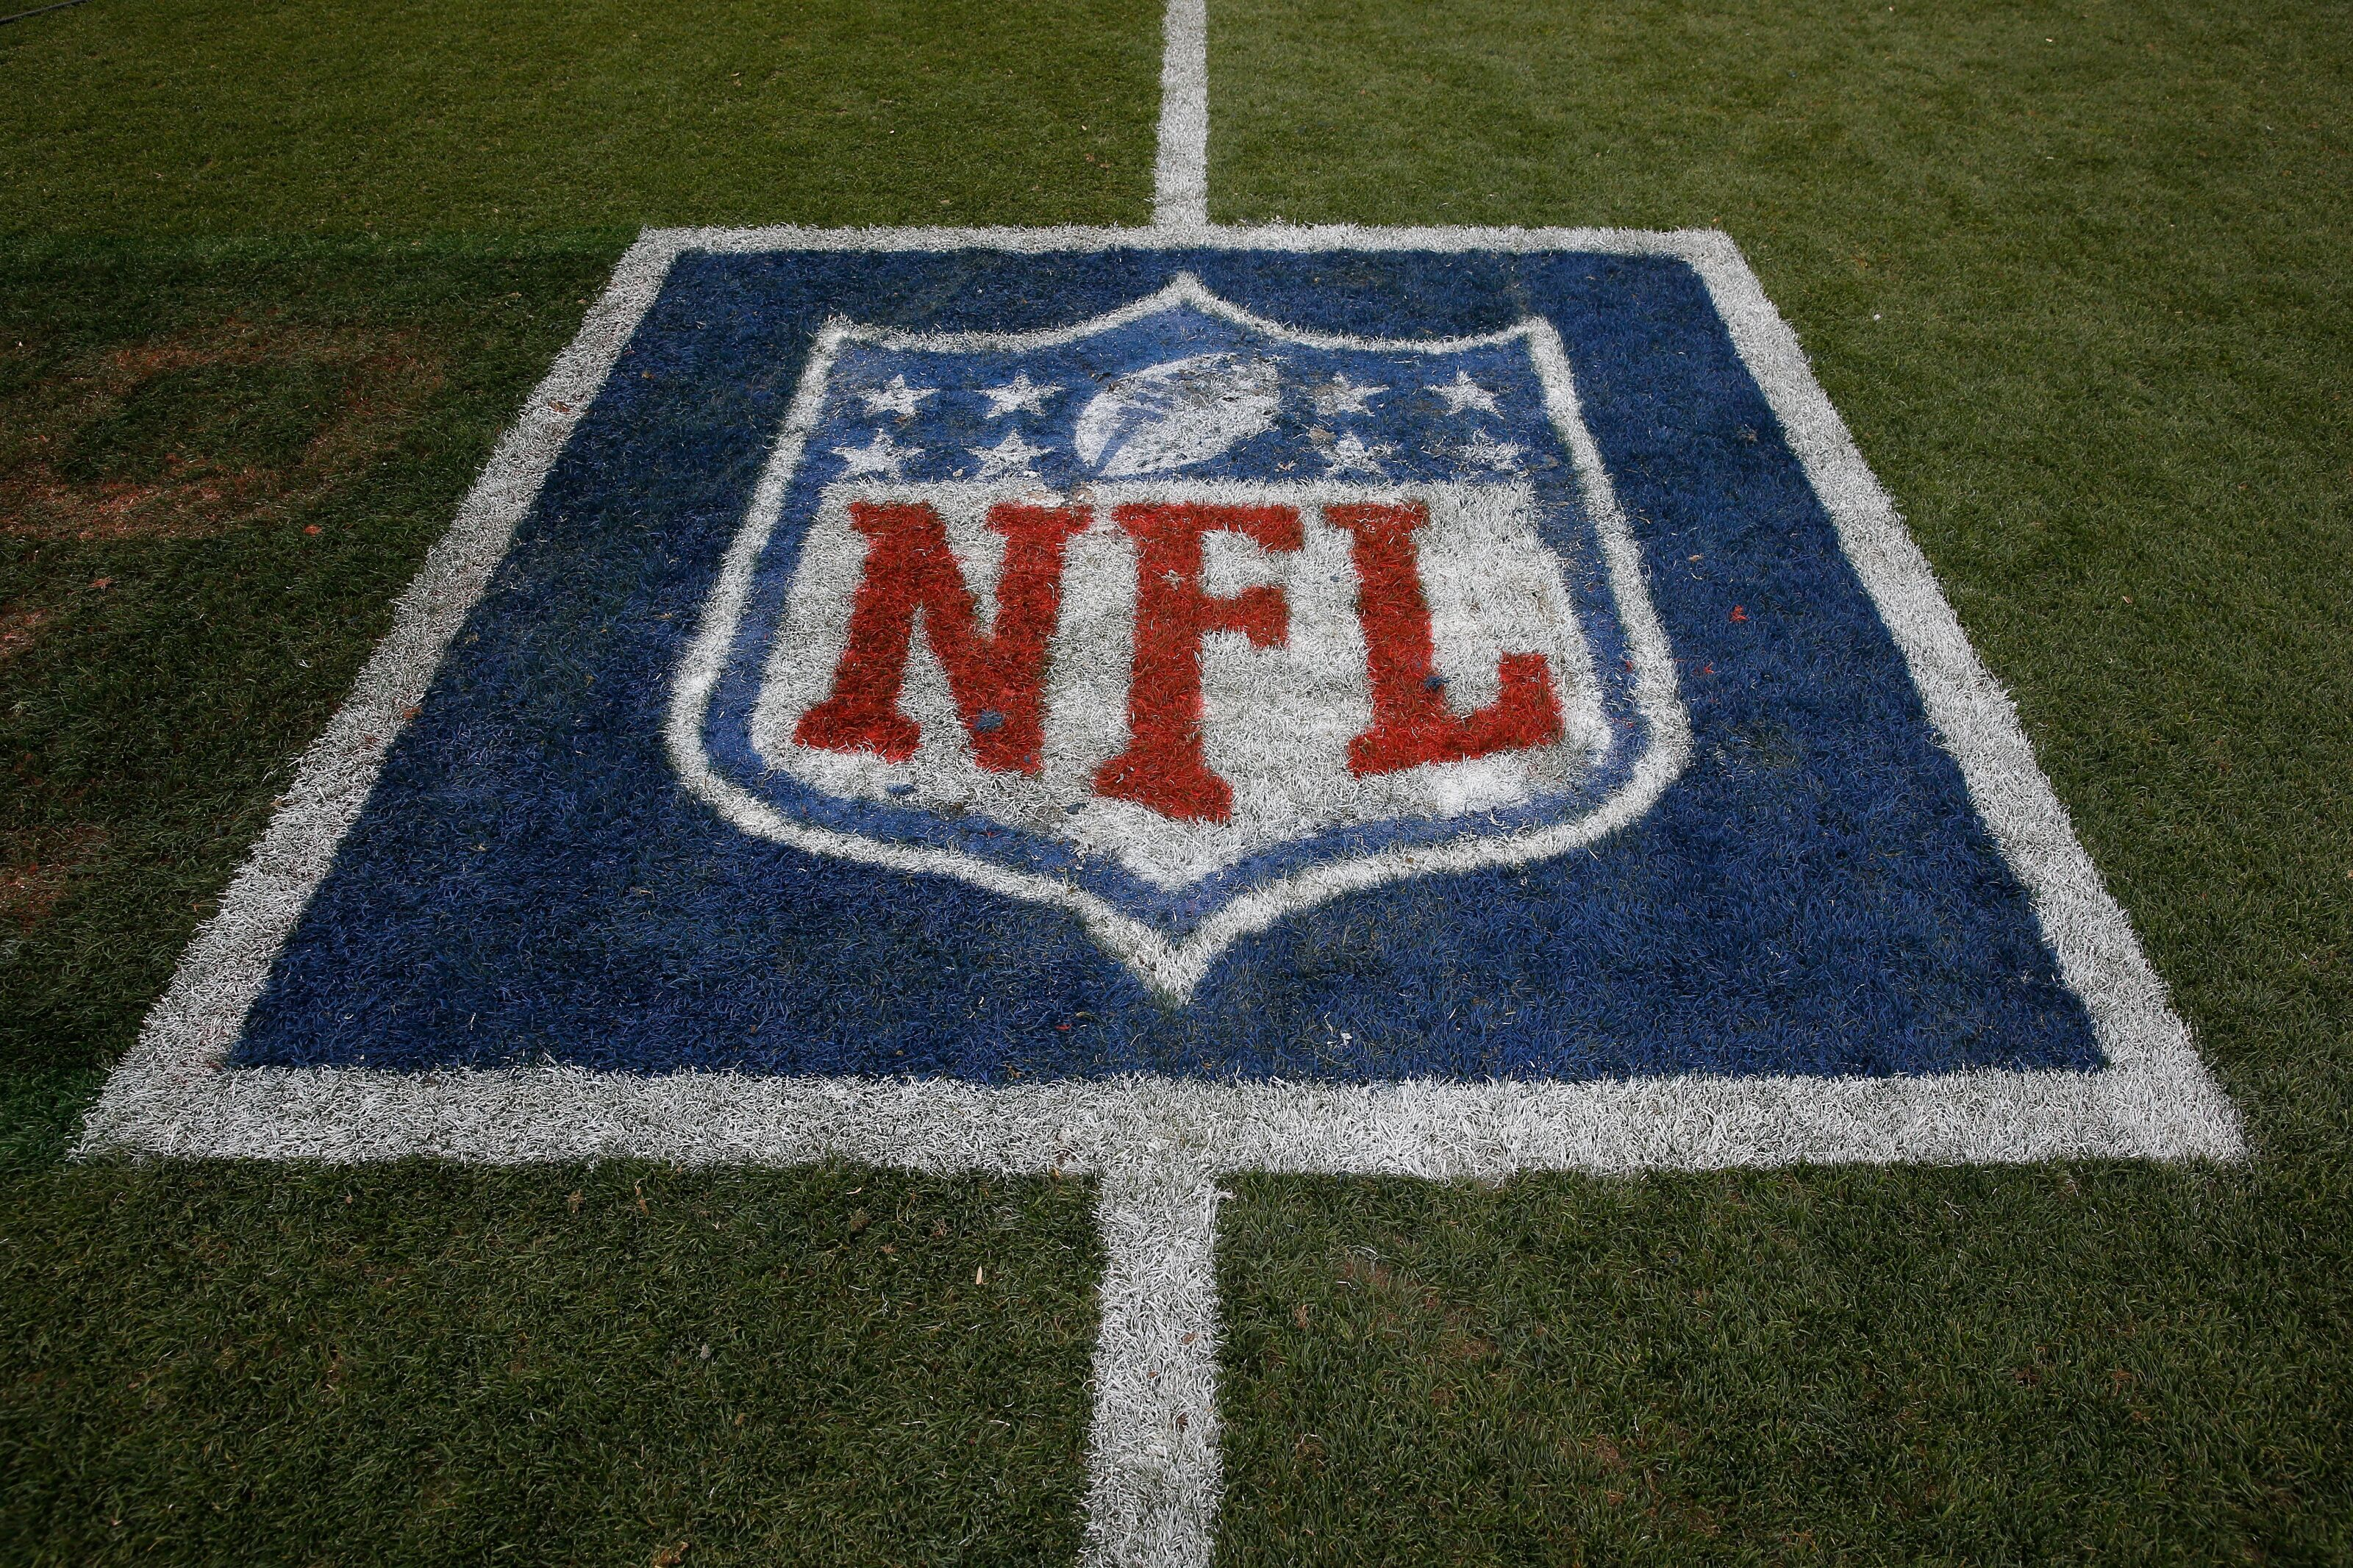 NFL has a big injury problem they don't know how to fix